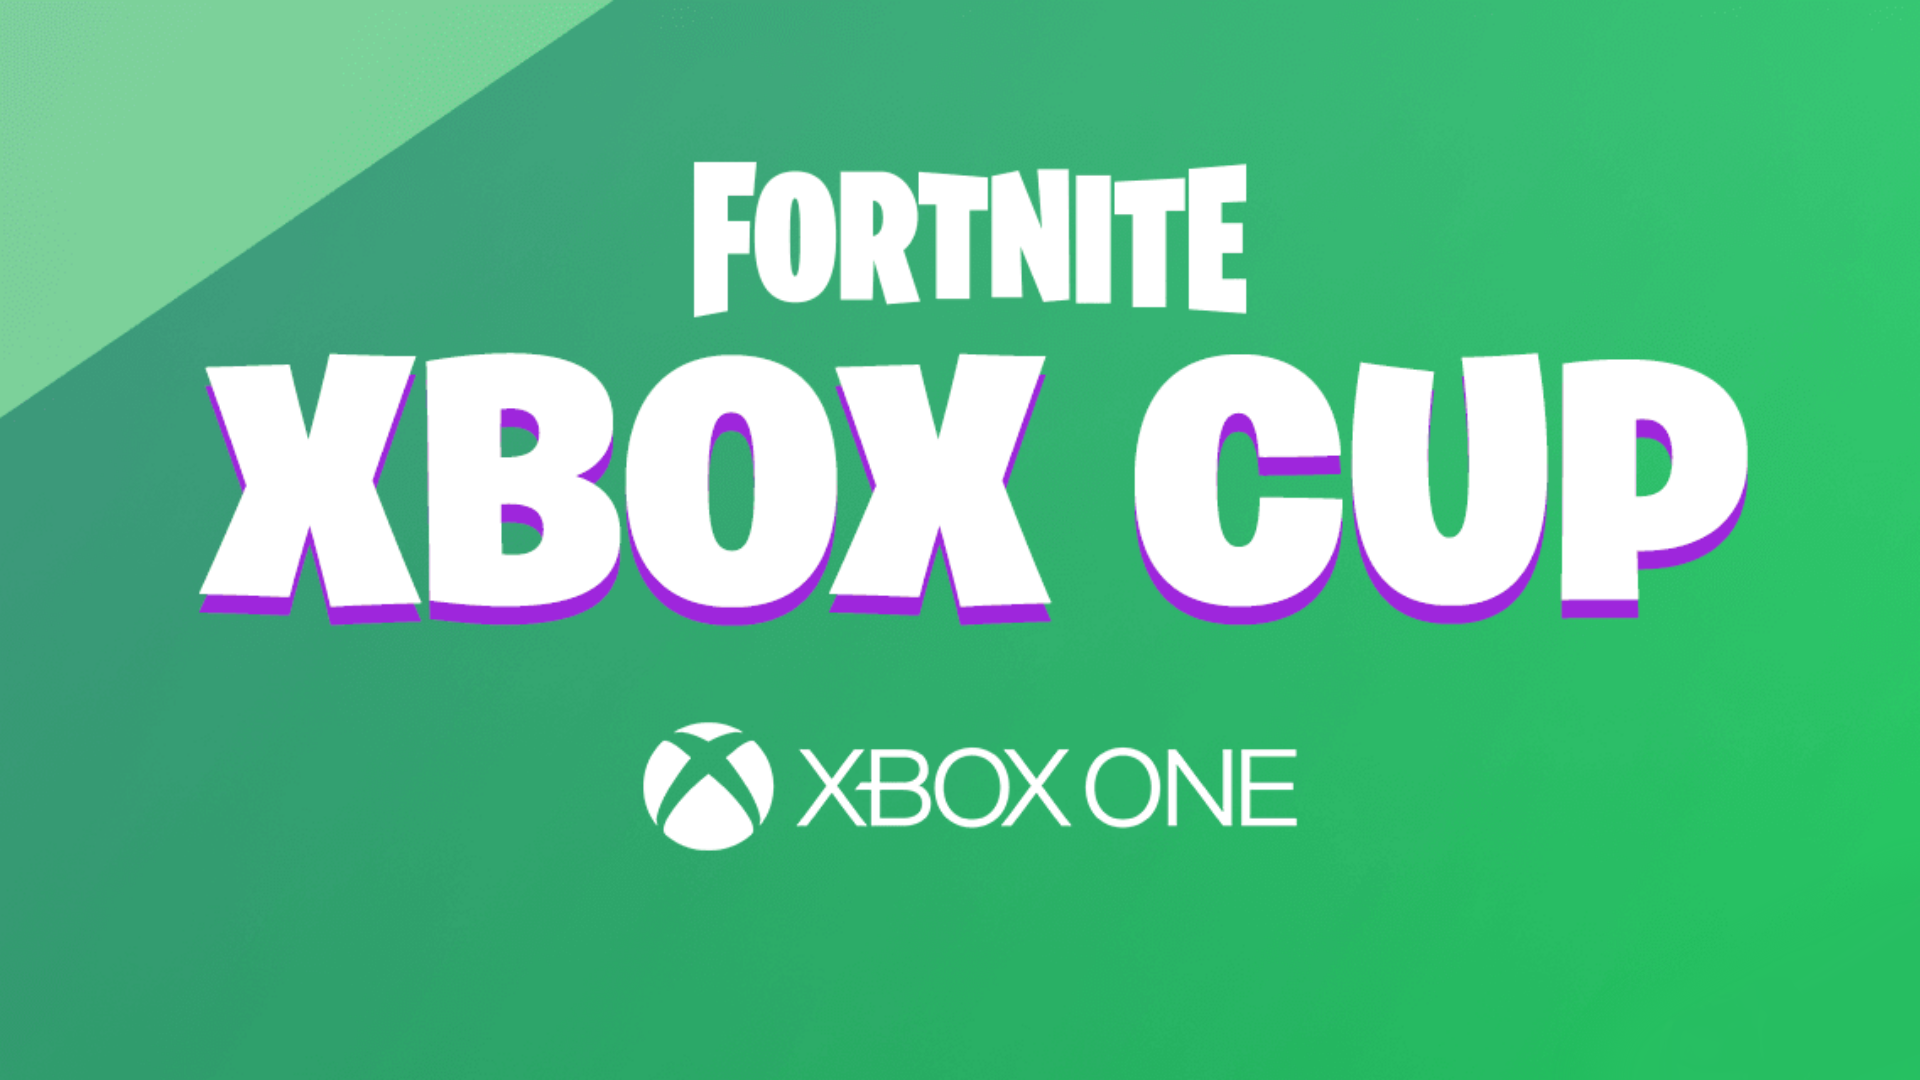 Fortnite Xbox Cup Details On Time Prize Pool And More For 1m Tournament Sporting News It is available in three distinct game mode versions that otherwise share the same general gameplay and game engine. fortnite xbox cup details on time